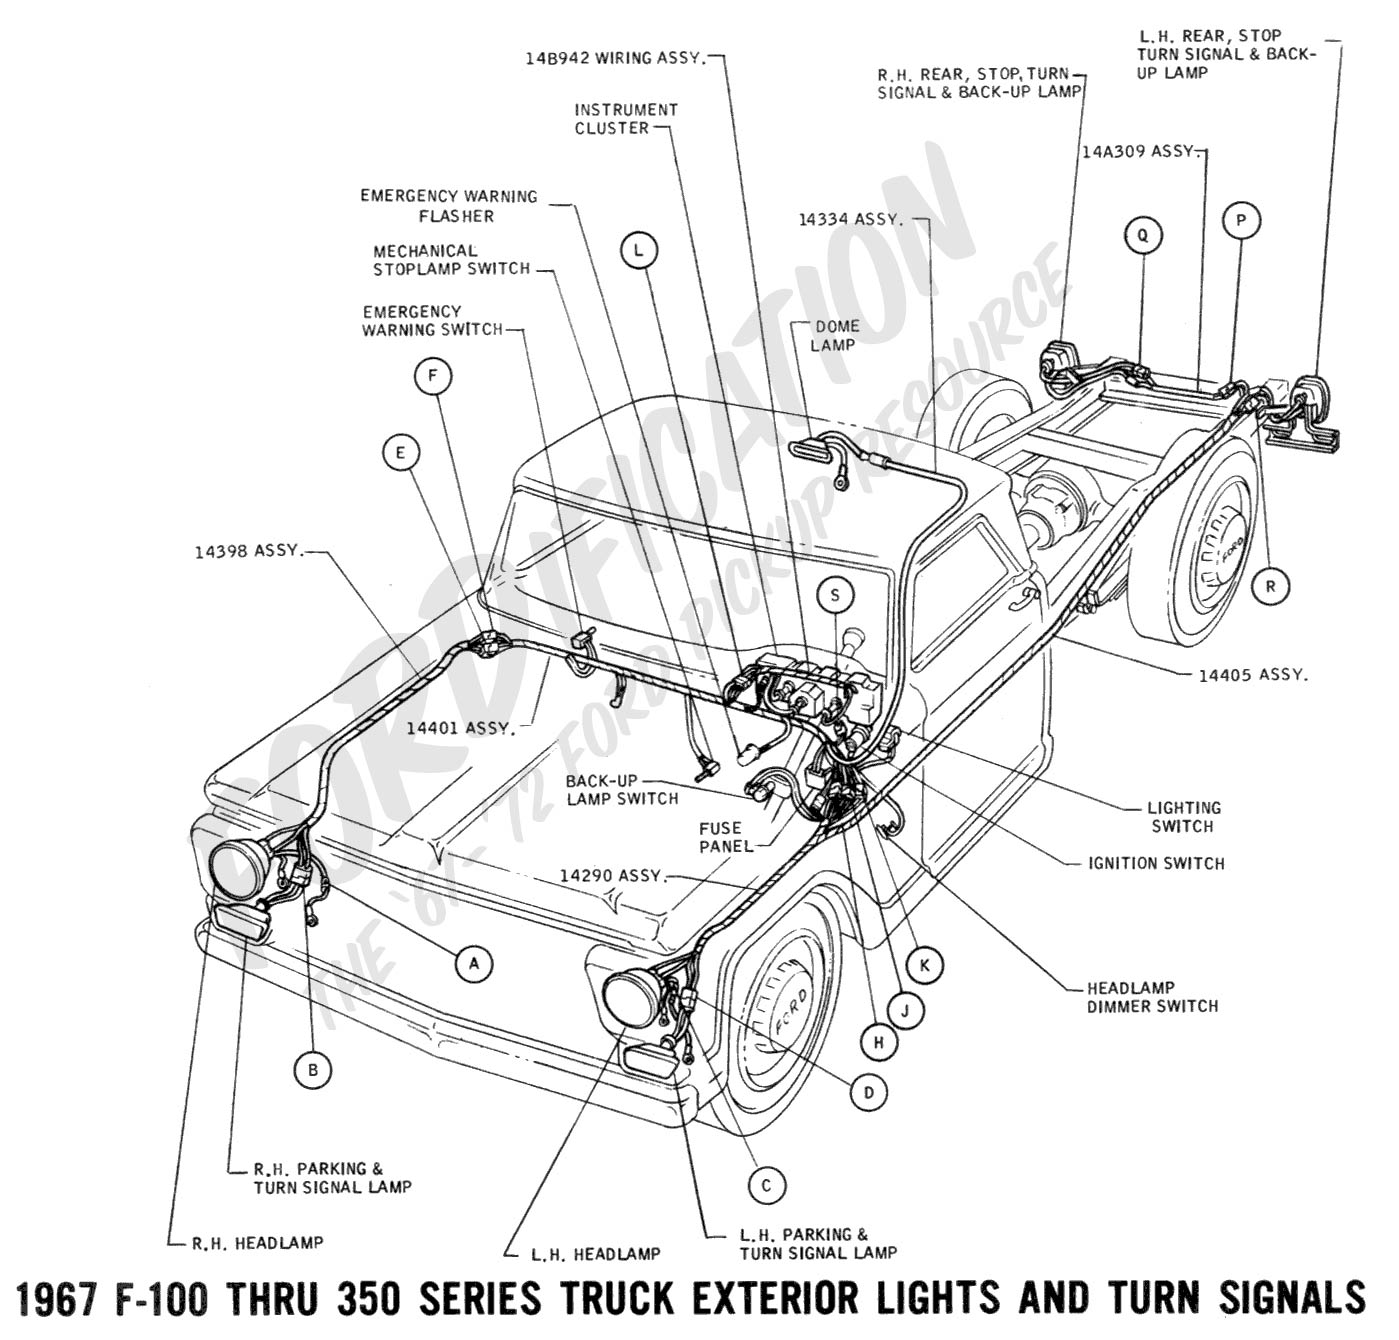 wiring 1967extlights01 ford ranger turn signal wiring diagram wiring diagram and 1994 ford f150 tail lights wiring diagram at crackthecode.co